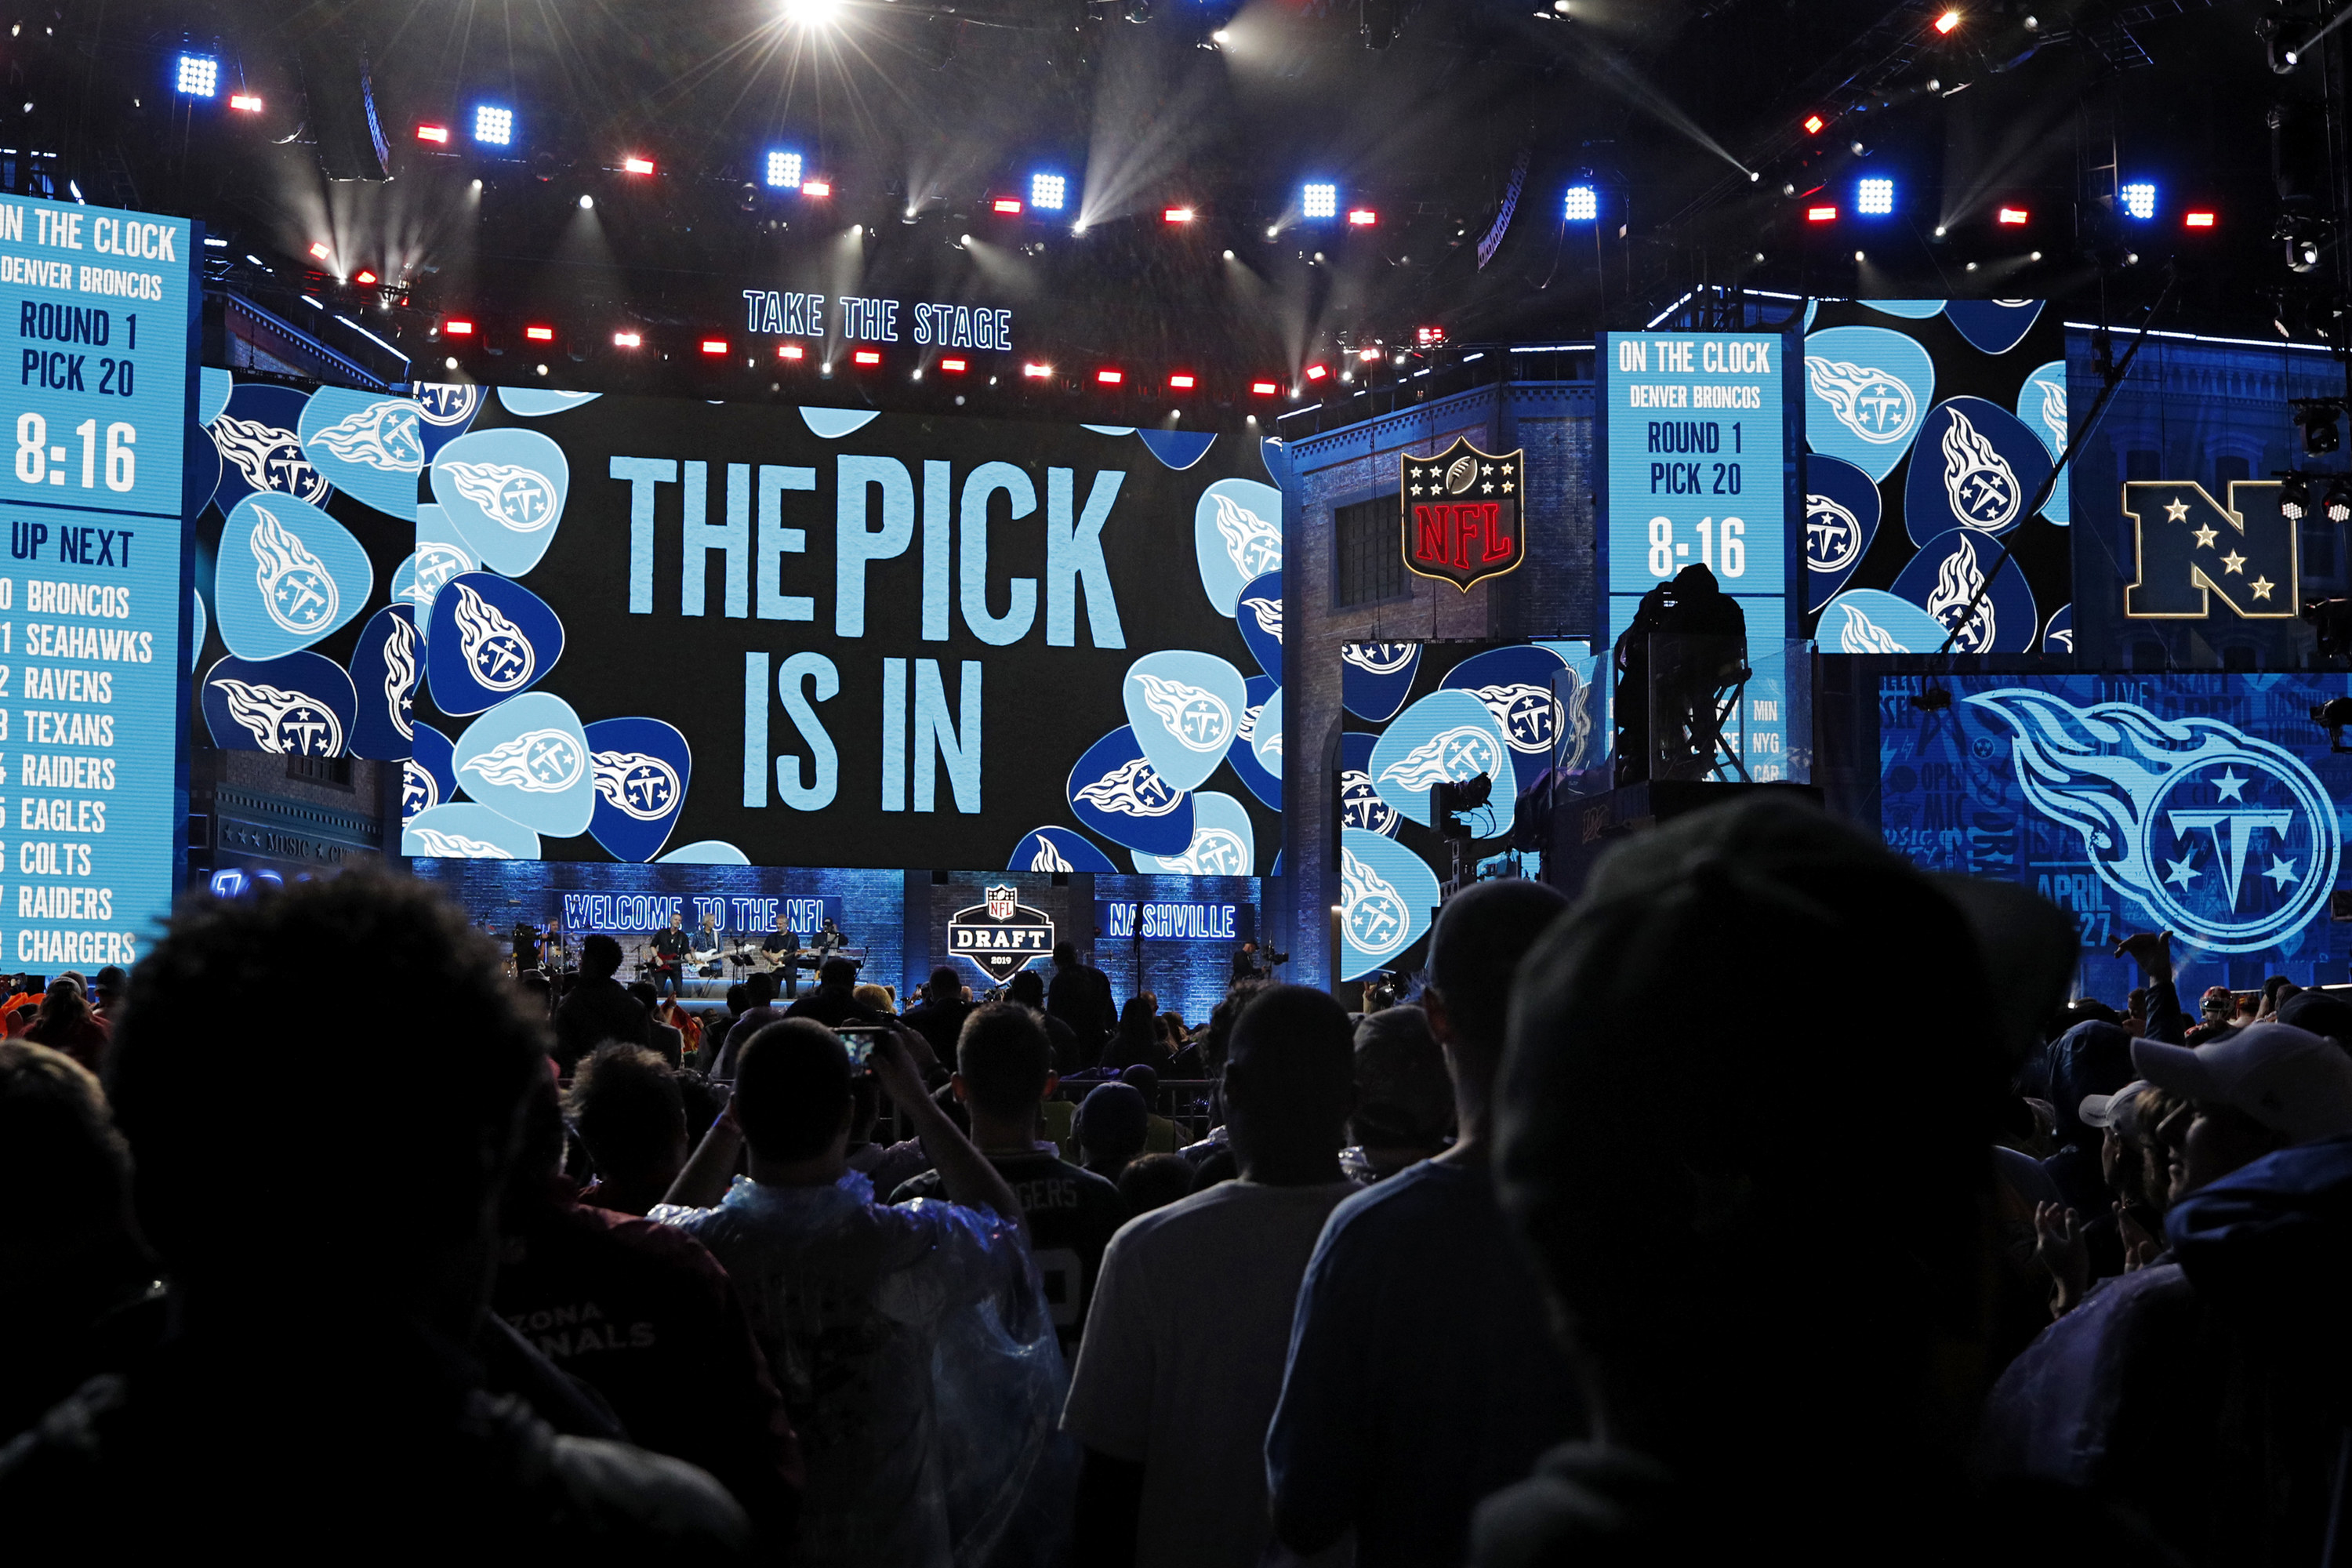 NFL Draft ceremony stage and crowd